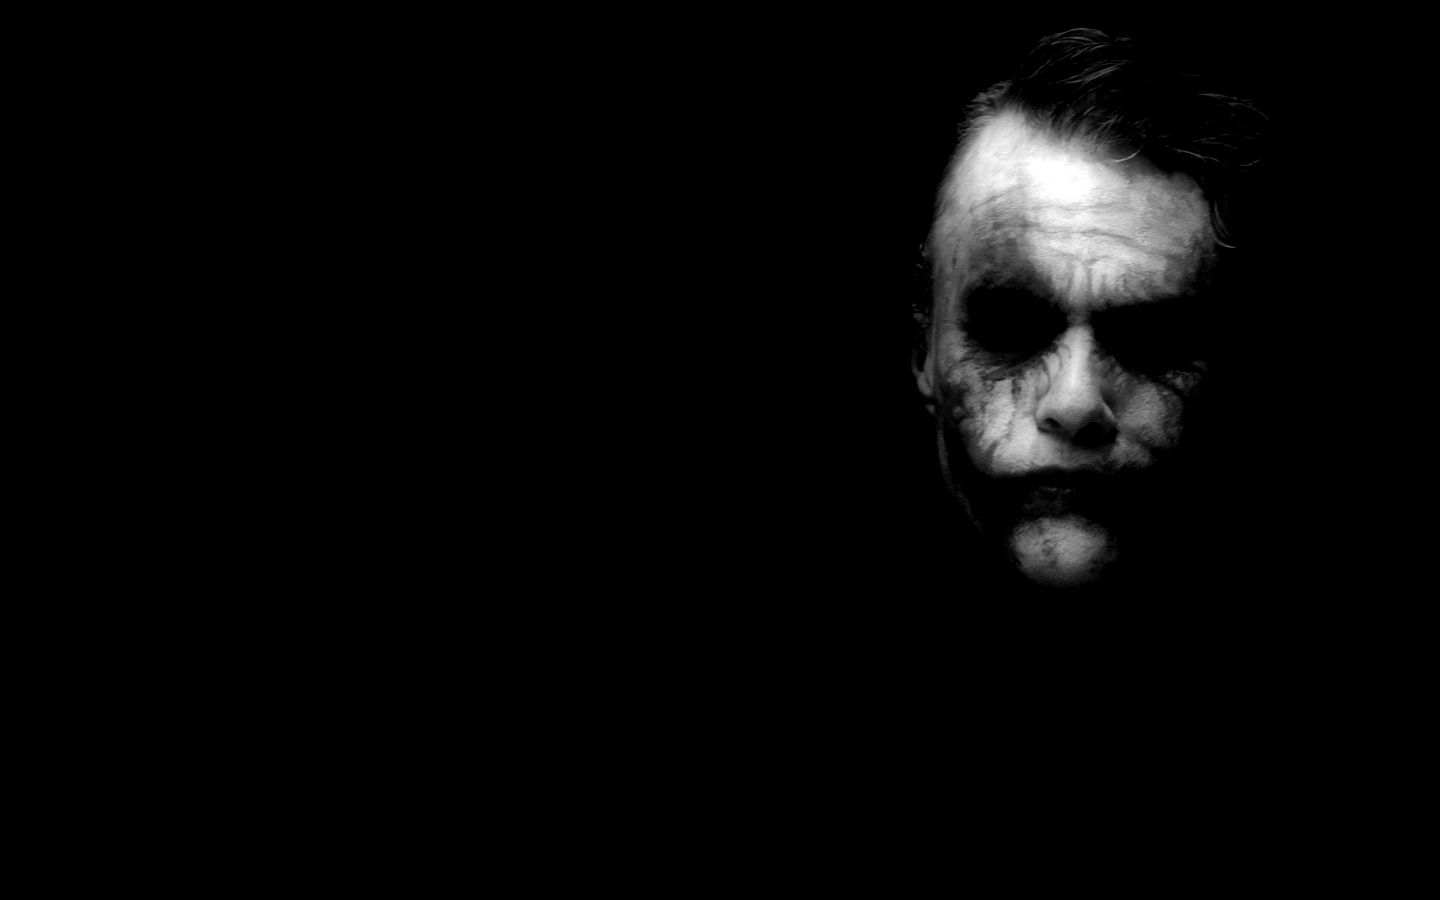 The Dark Knight 2011 Let S Put A Smile On That Face Joker Wallpapers Joker Pics Joker Hd Wallpaper